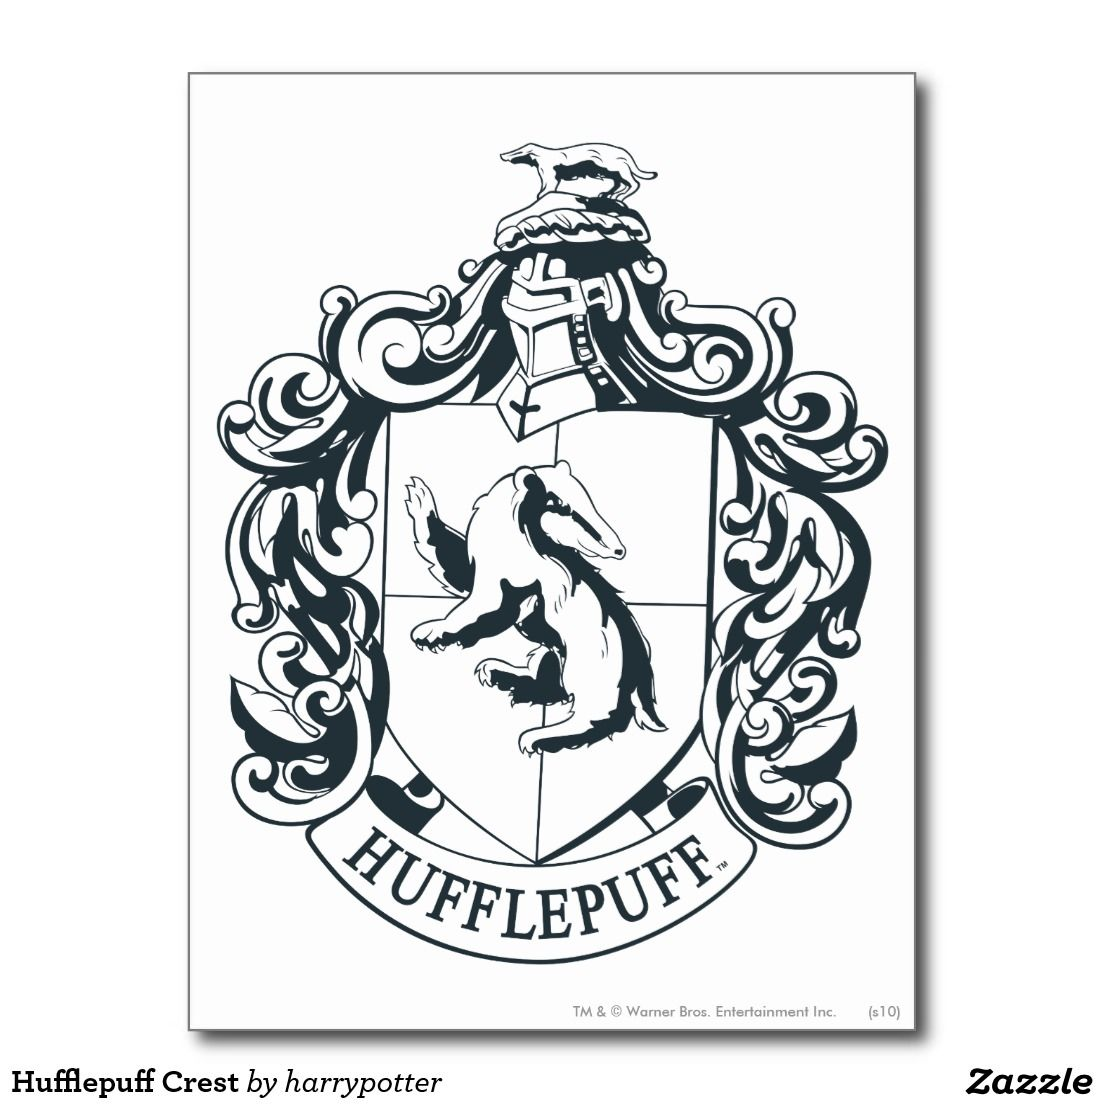 Comprar Libros De Harry Potter Postal Escudo De Hufflepuff Zazzle En 2019 Harry